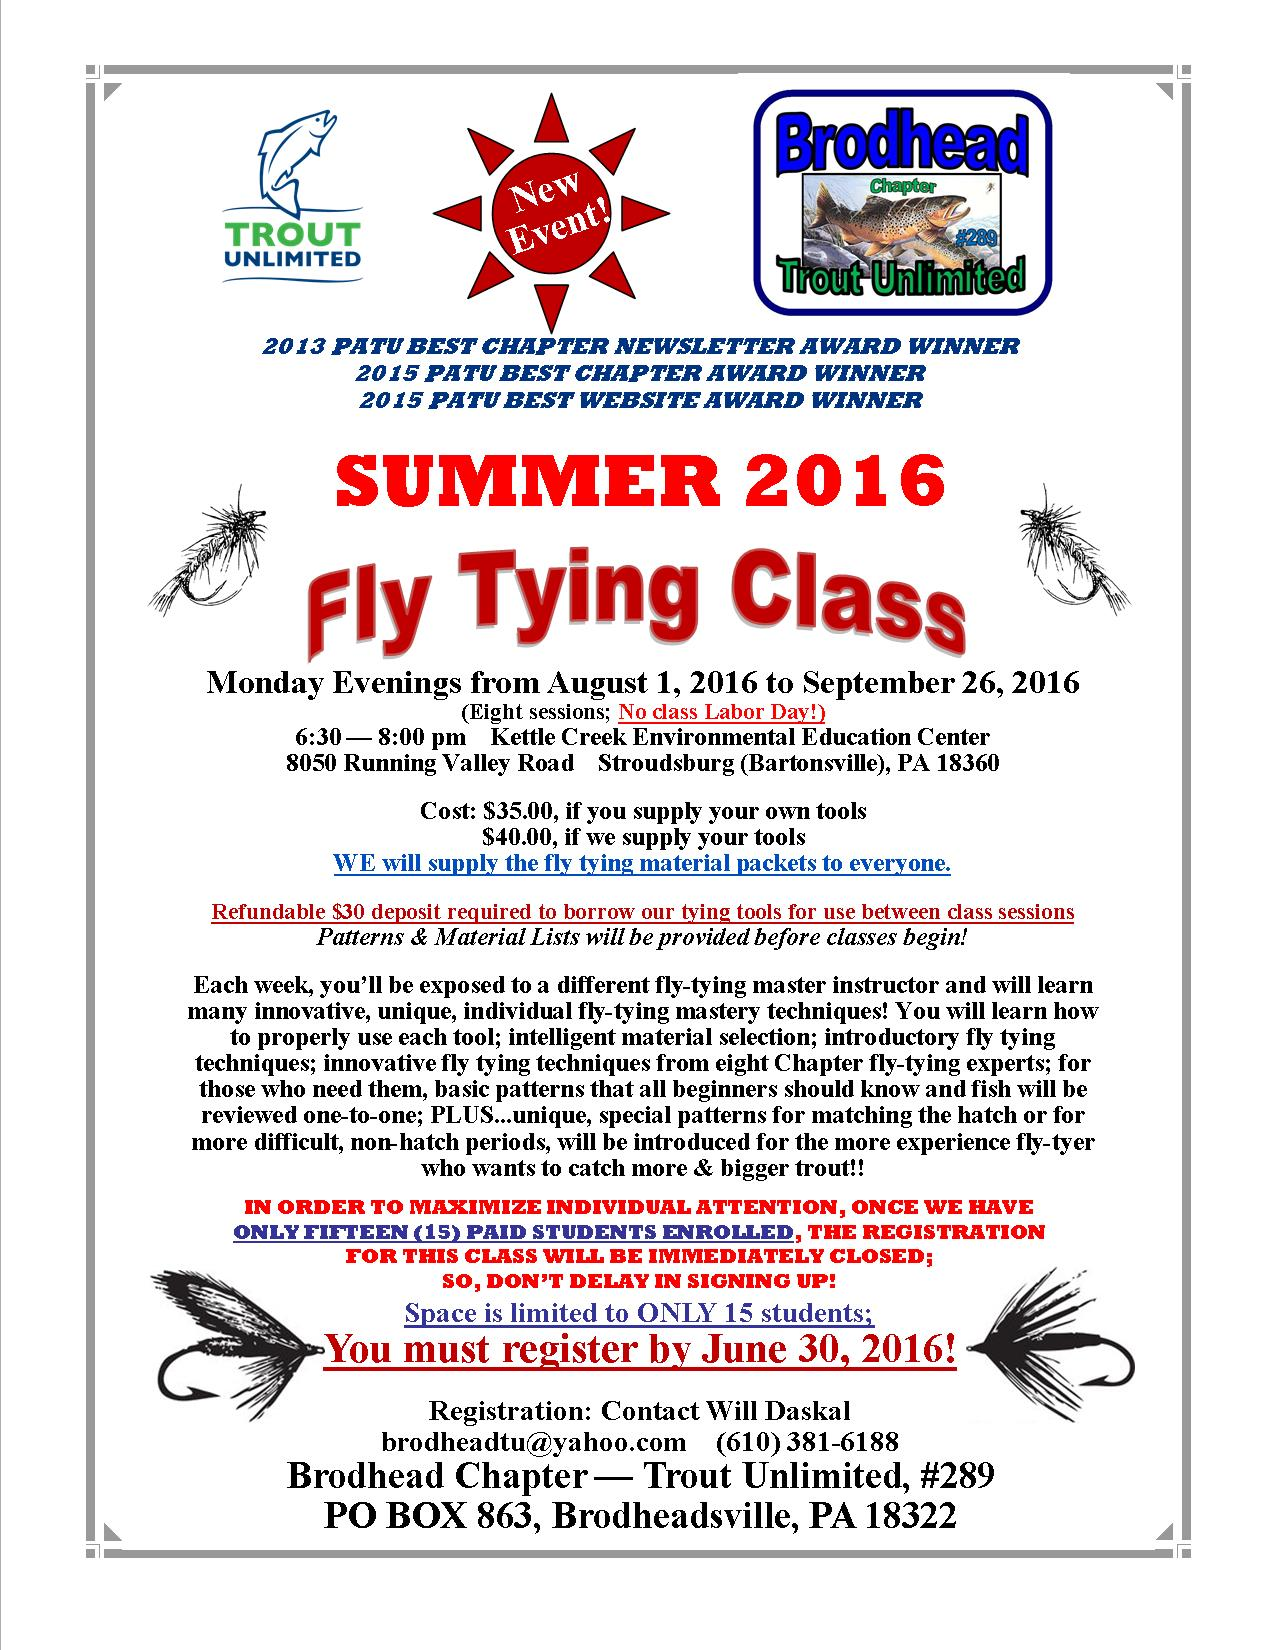 Registration deadline for summer fly tying class this for Pa fishing license prices